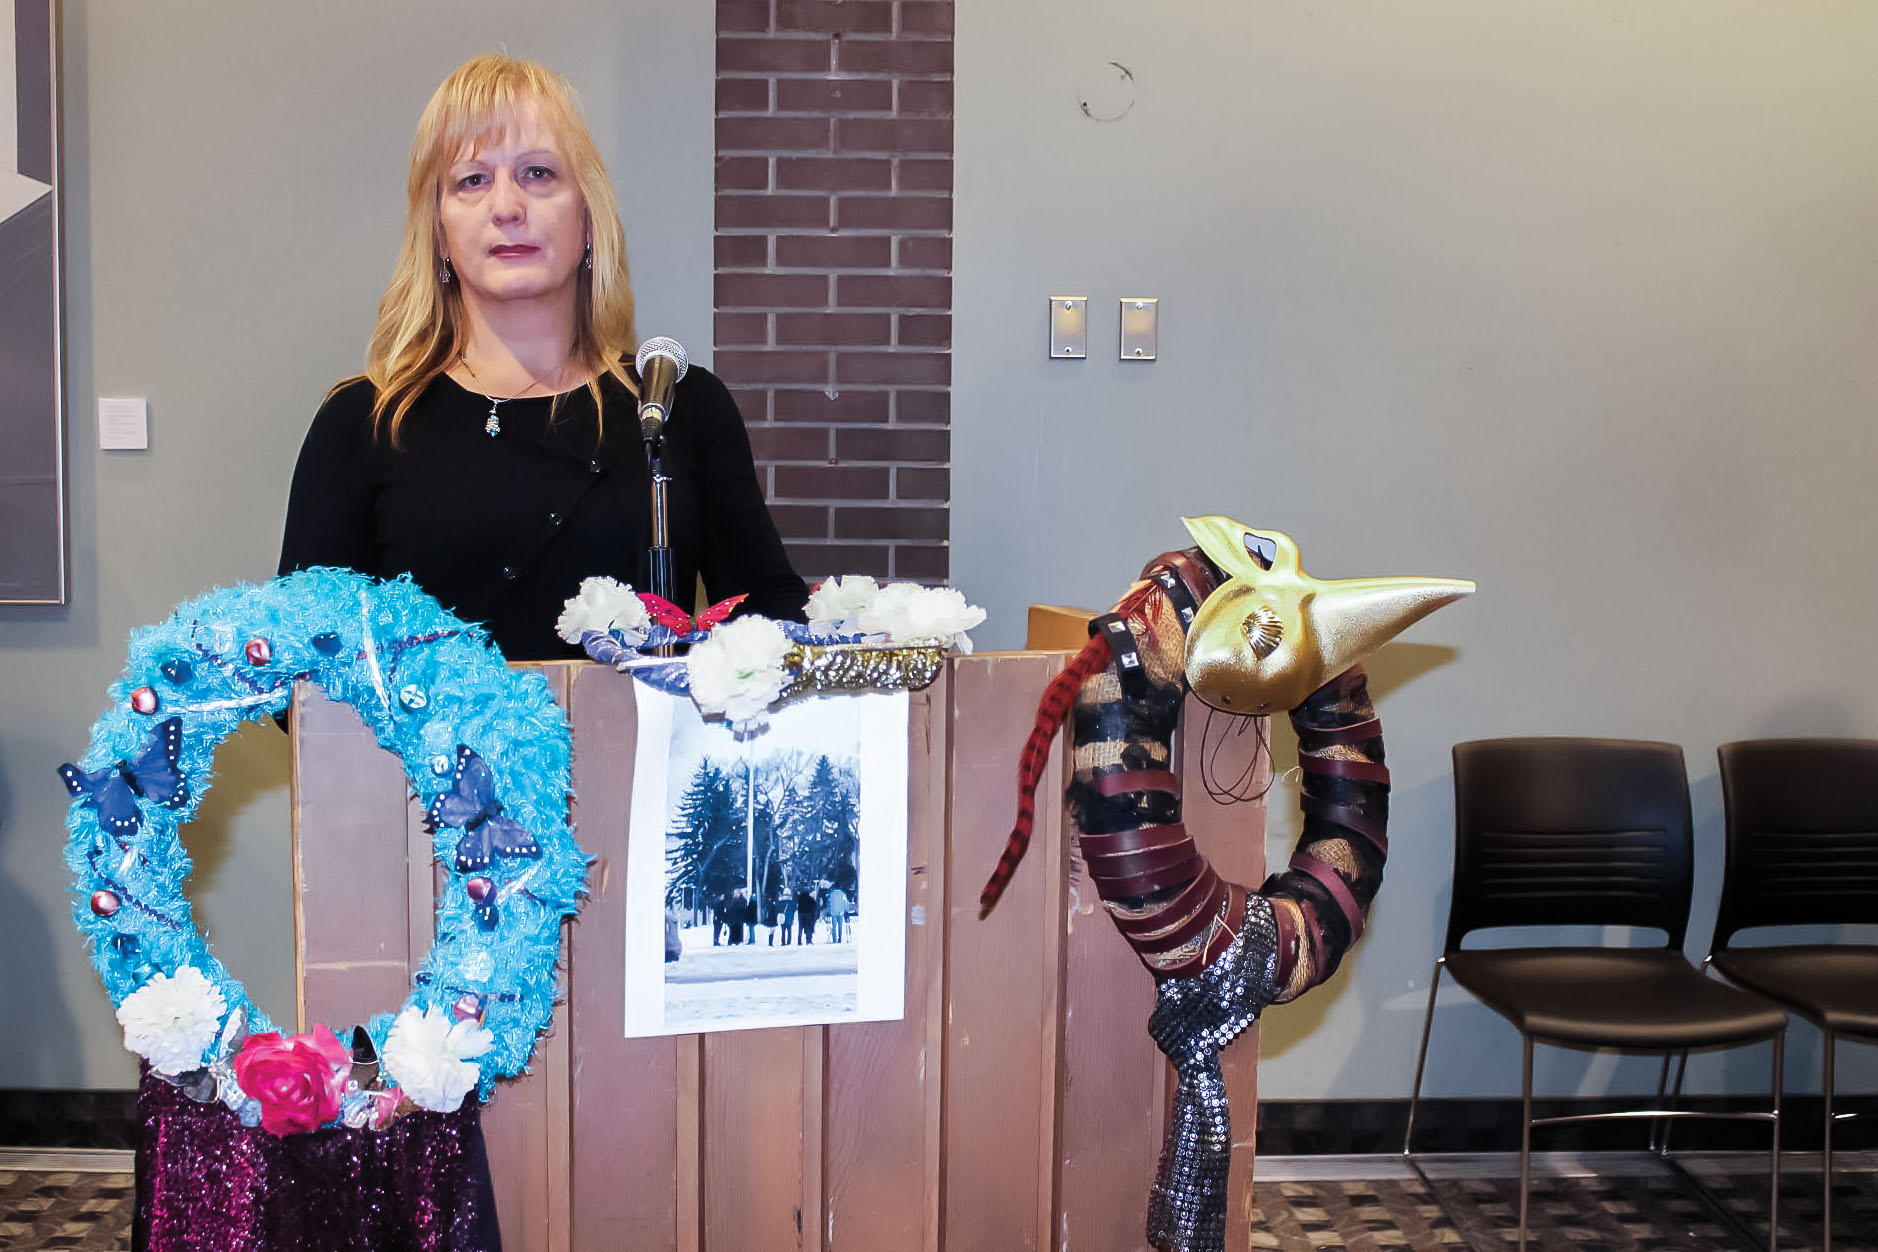 Transgender Day of Remembrance chair Shandi Strong addresses the crowd at the University of Winnipeg on Nov. 20. THE PROJECTOR/ Lexi Myers